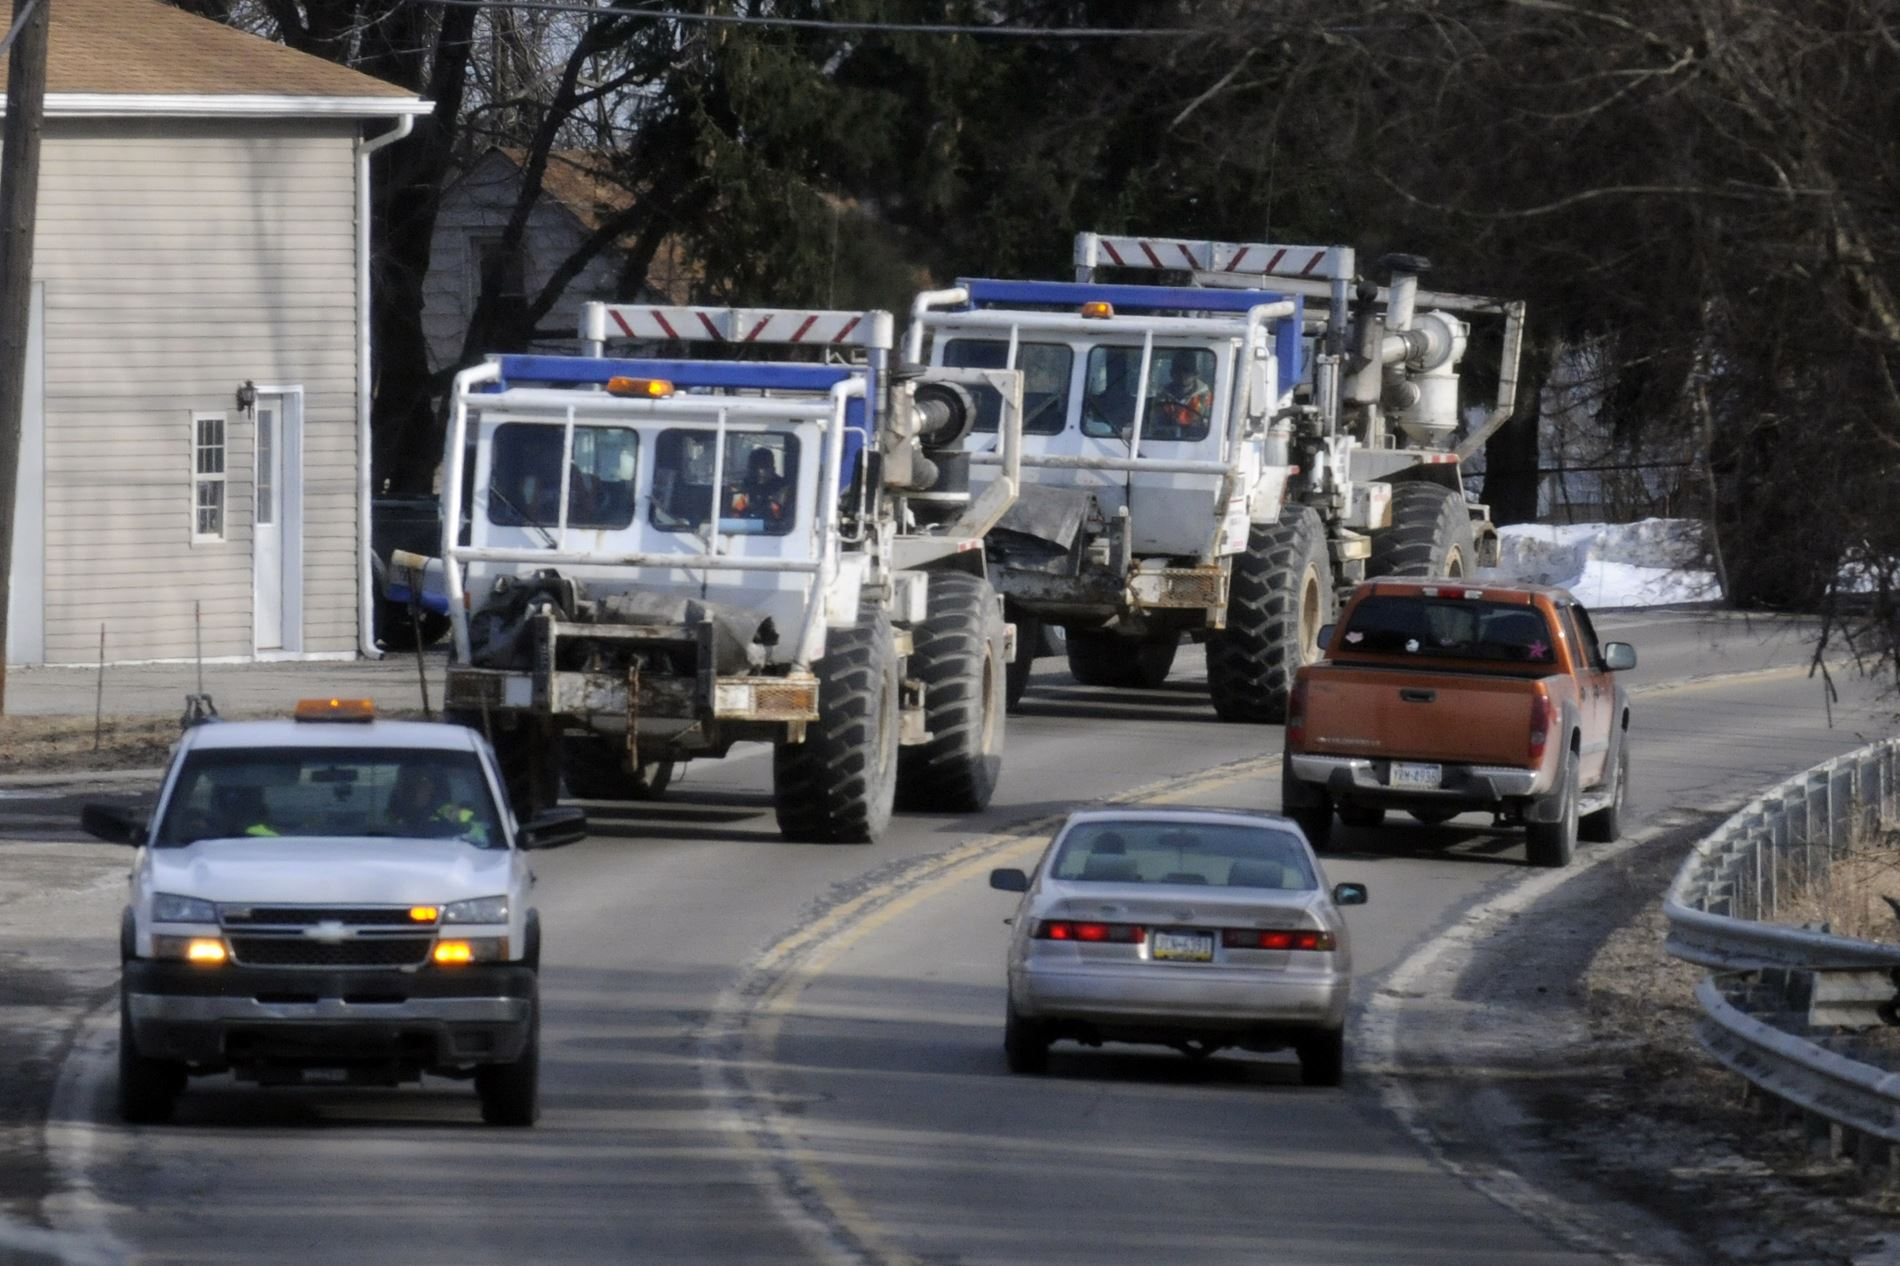 20140318bwSeismic Dawson Geophysical Company seismic testing vehicles return to their overnight parking in Center after a day of work in Aliquippa. Dawson was hired by Seitel, Inc., to survey parts of Beaver and Allegheny counties.